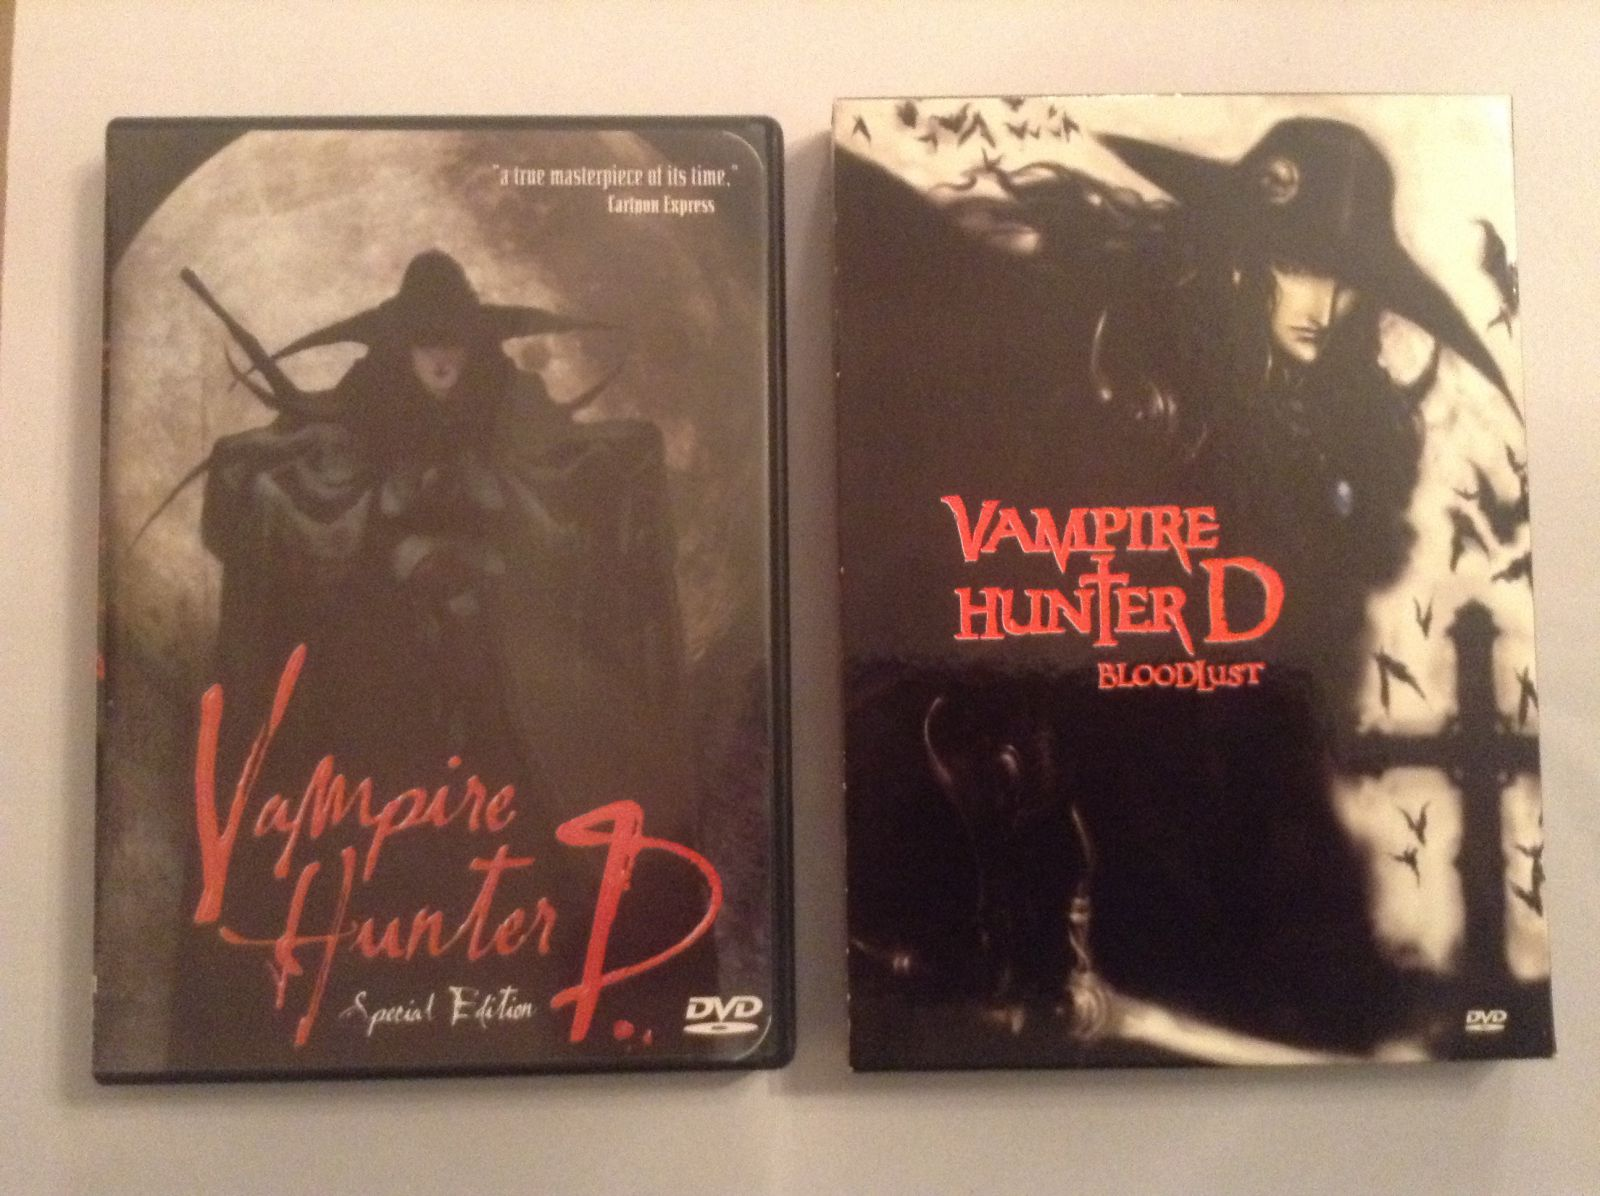 Vampire Hunter D and Bloodlust